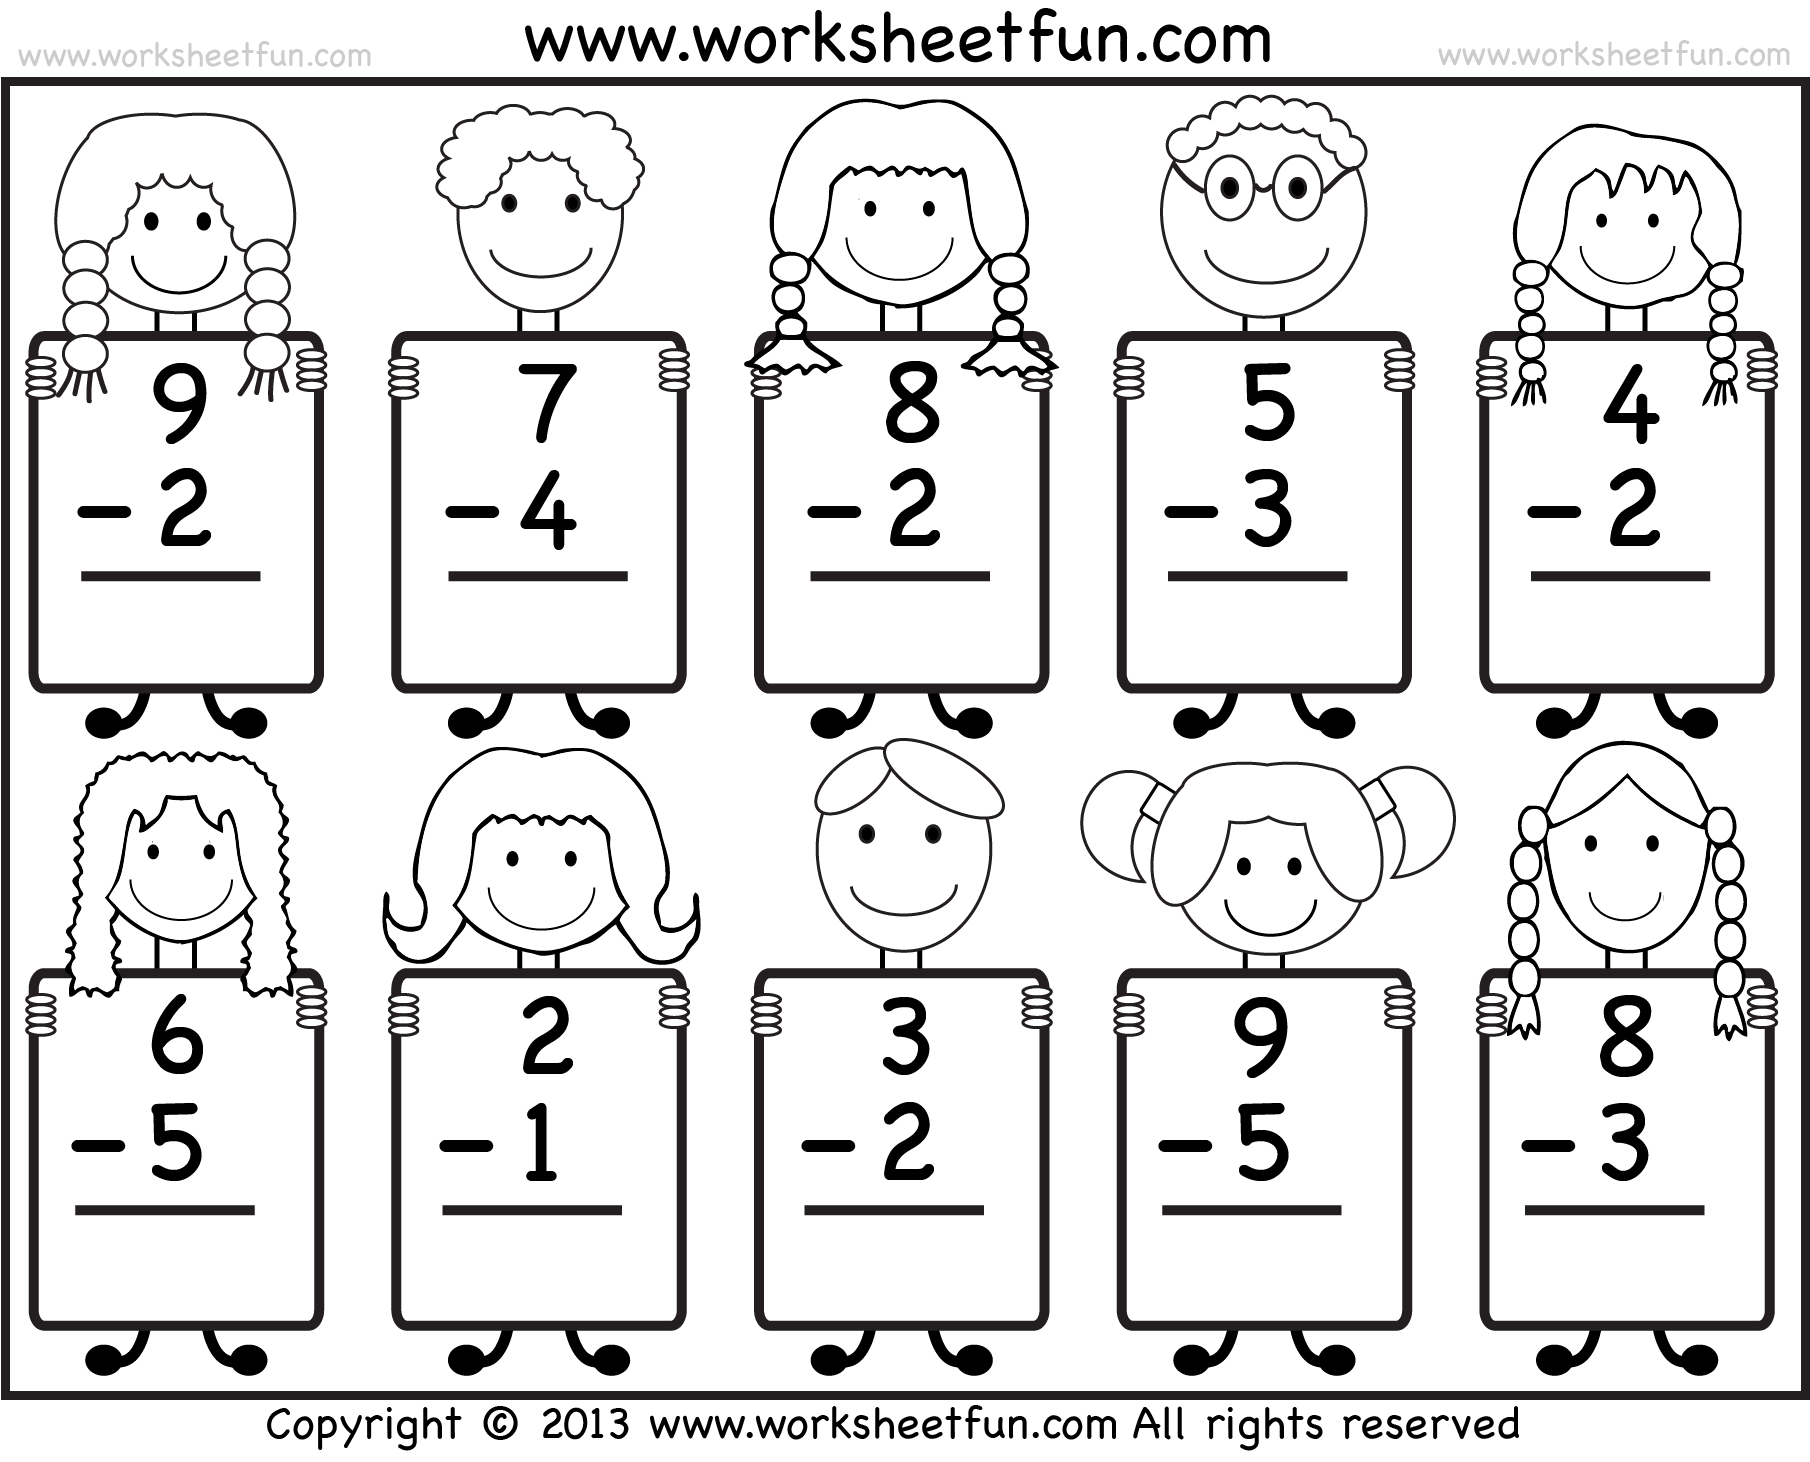 Worksheets Printable Math Worksheets For Kids beginner subtraction 10 kindergarten worksheets subtraction